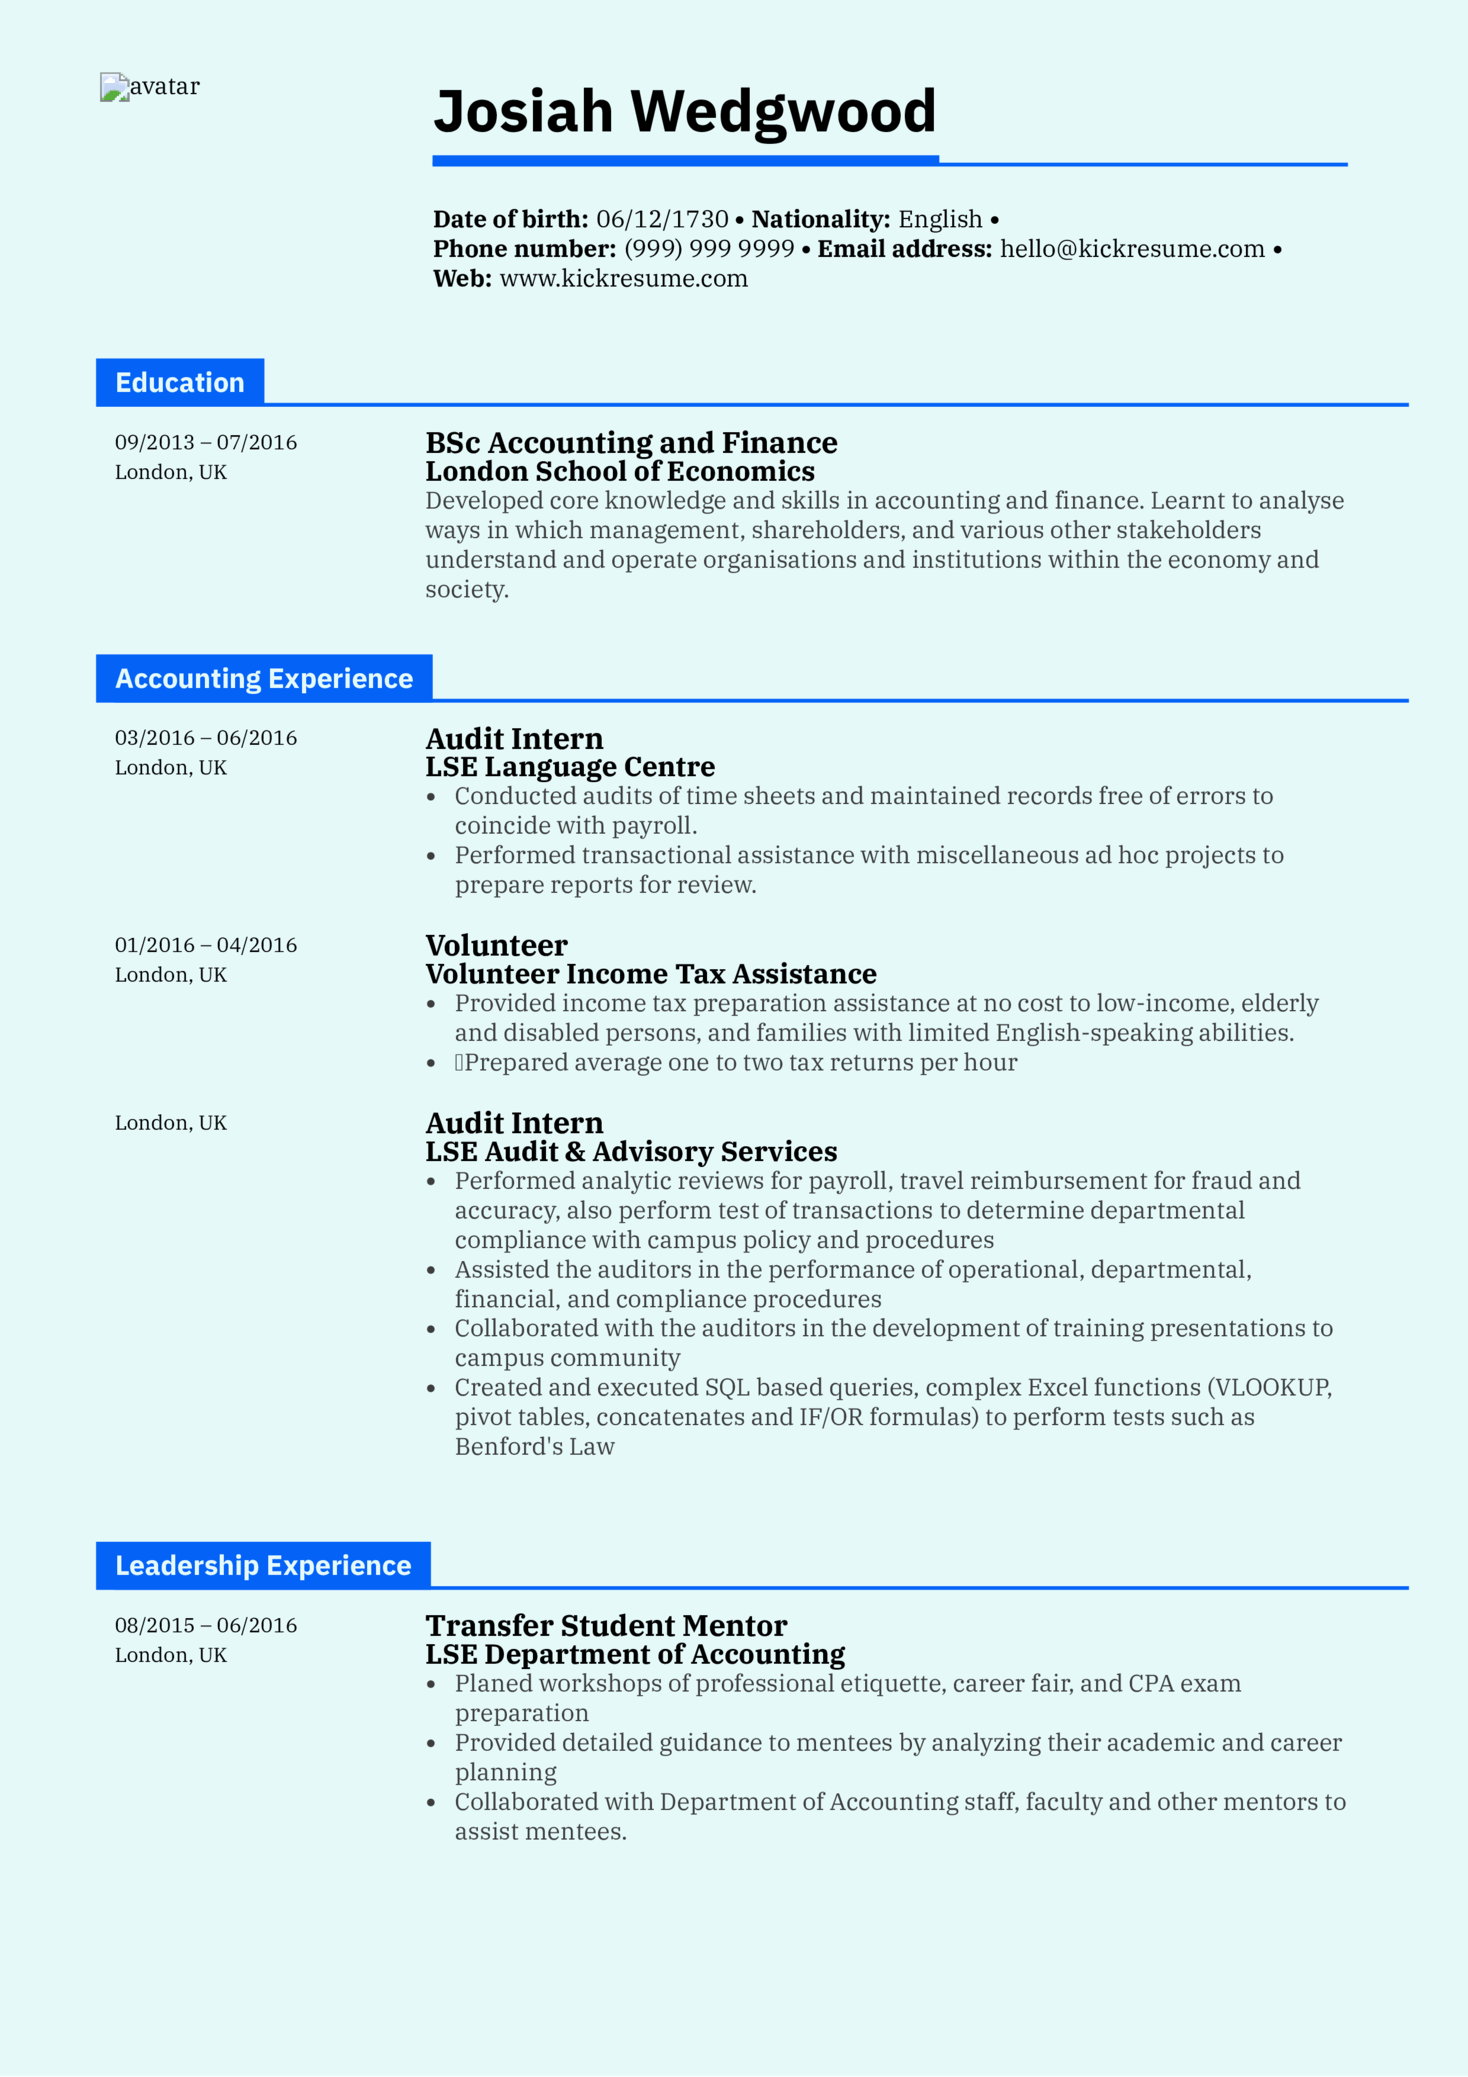 college graduate accounting resume - Teriz.yasamayolver.com